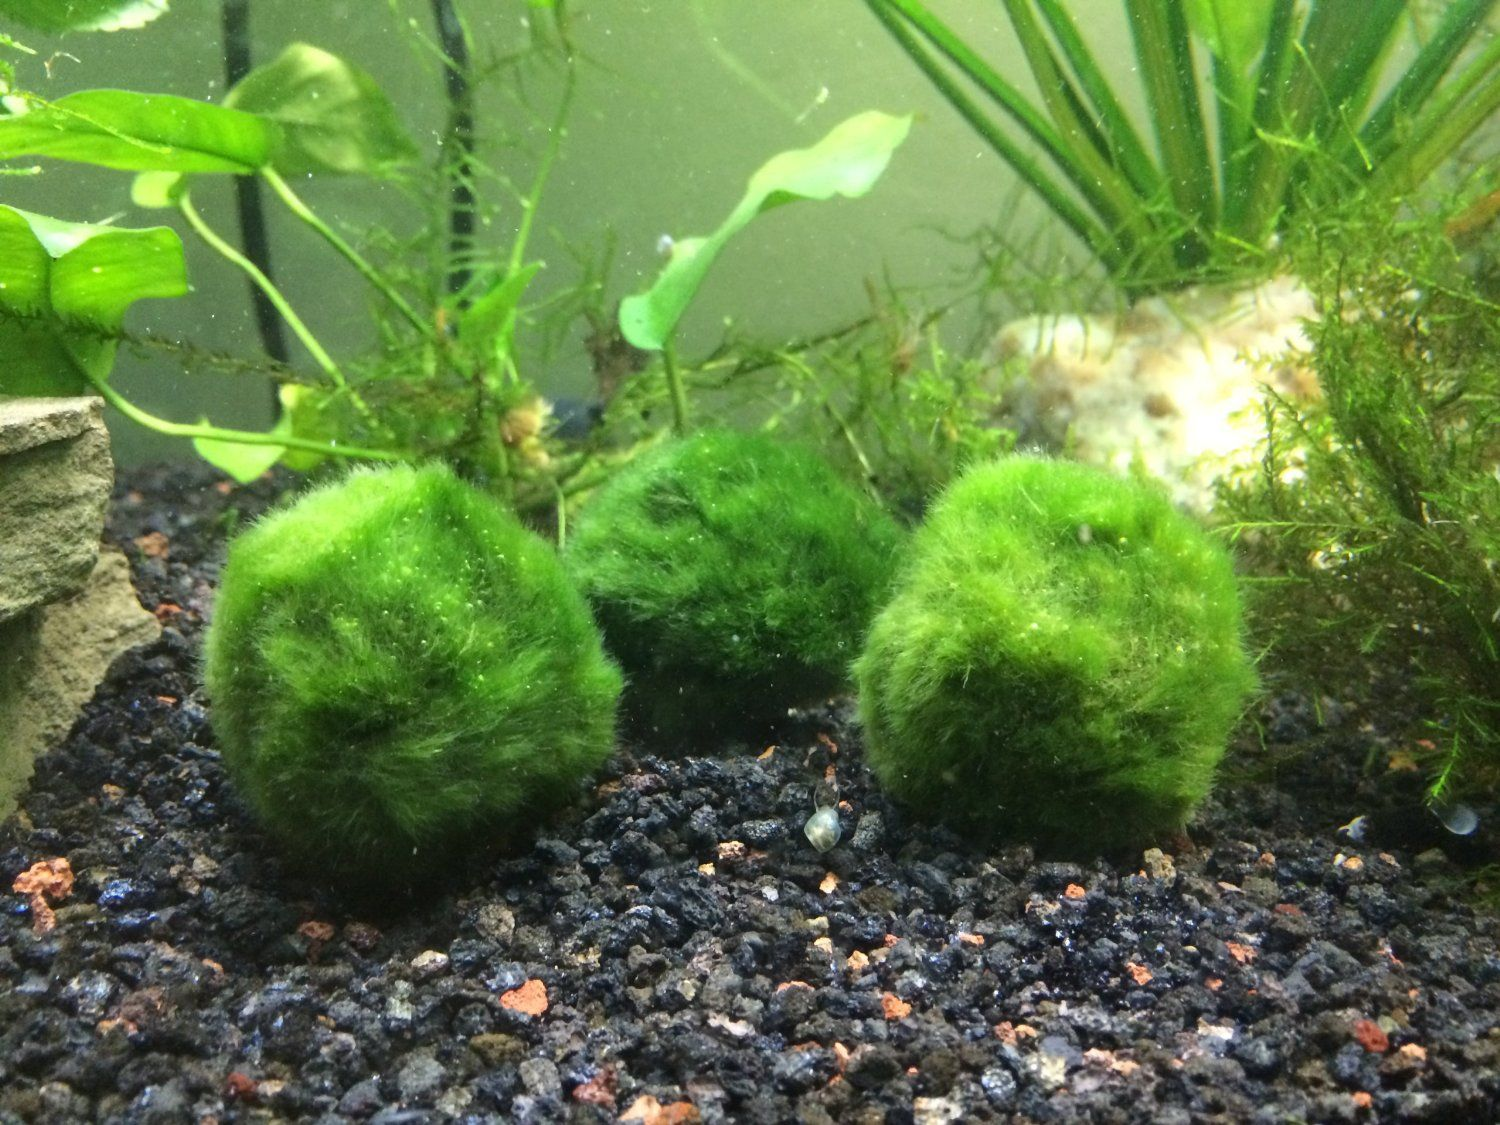 Fish aquarium take care - Fish Giant Marimo Moss Balls From Japan Are Growing In Water Easy To Take Care